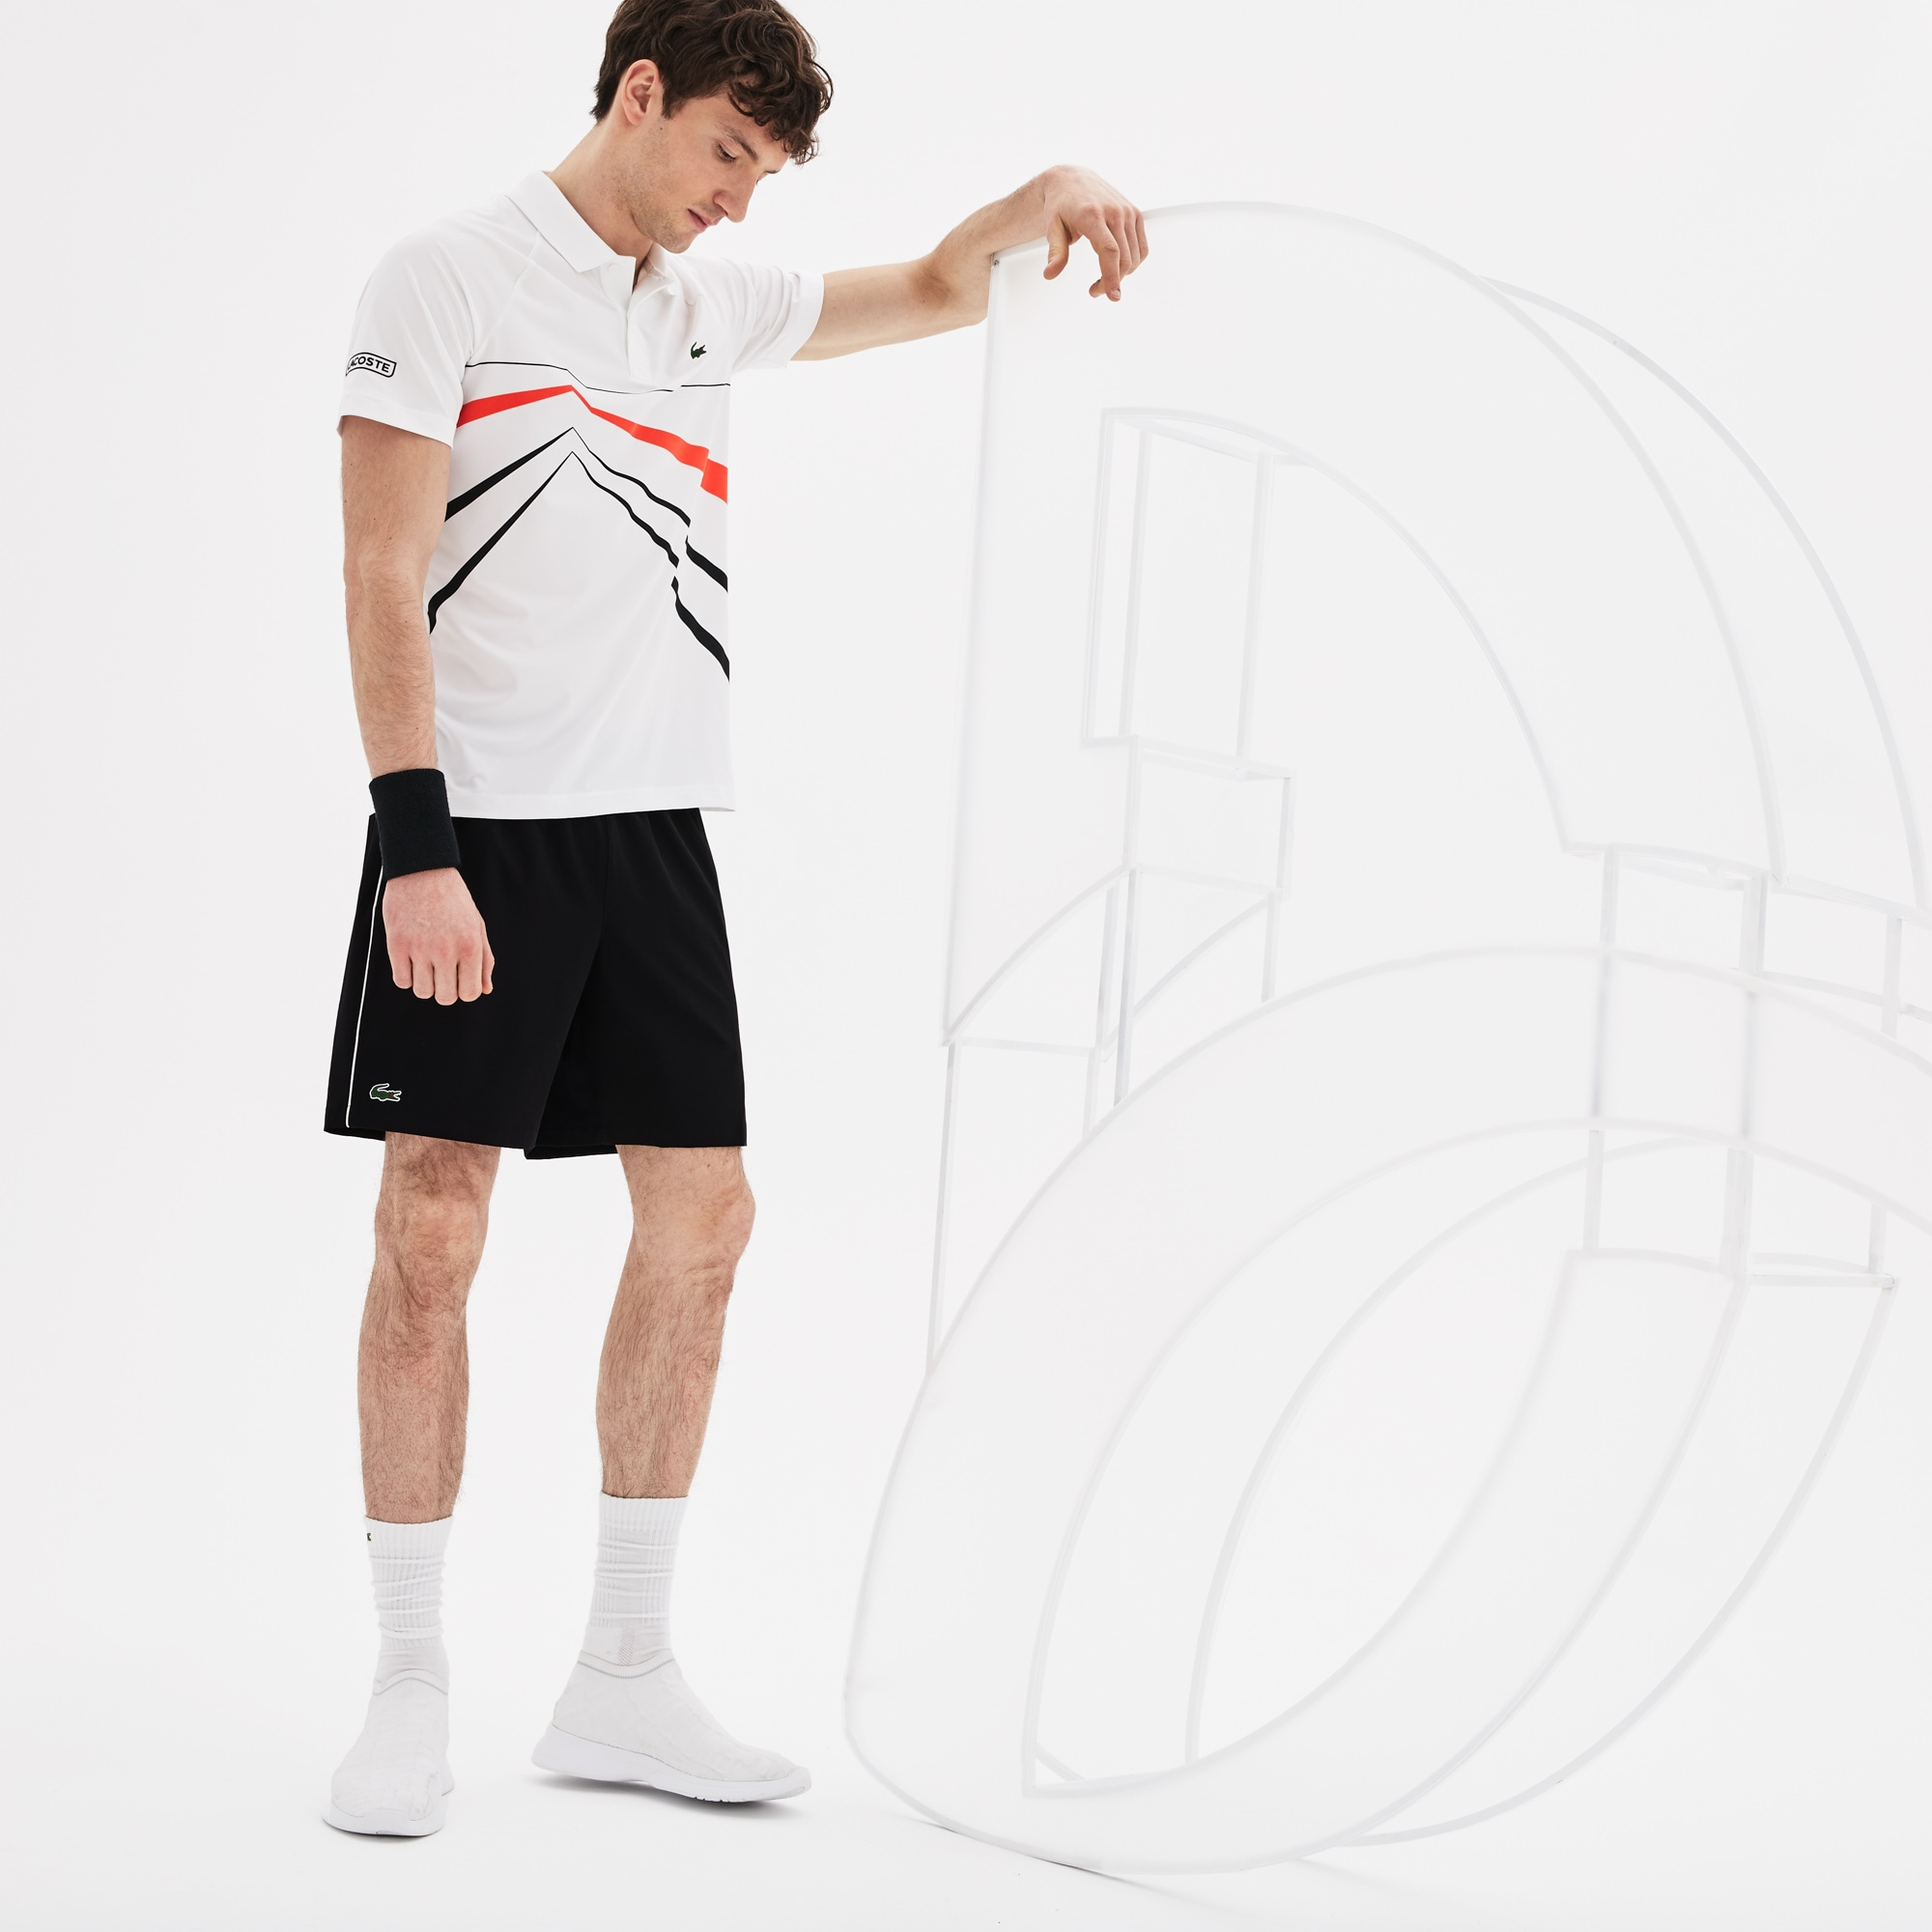 Men's Lacoste SPORT NOVAK DJOKOVIC SUPPORT WITH STYLE COLLECTION Piped Stretch Technical Shorts